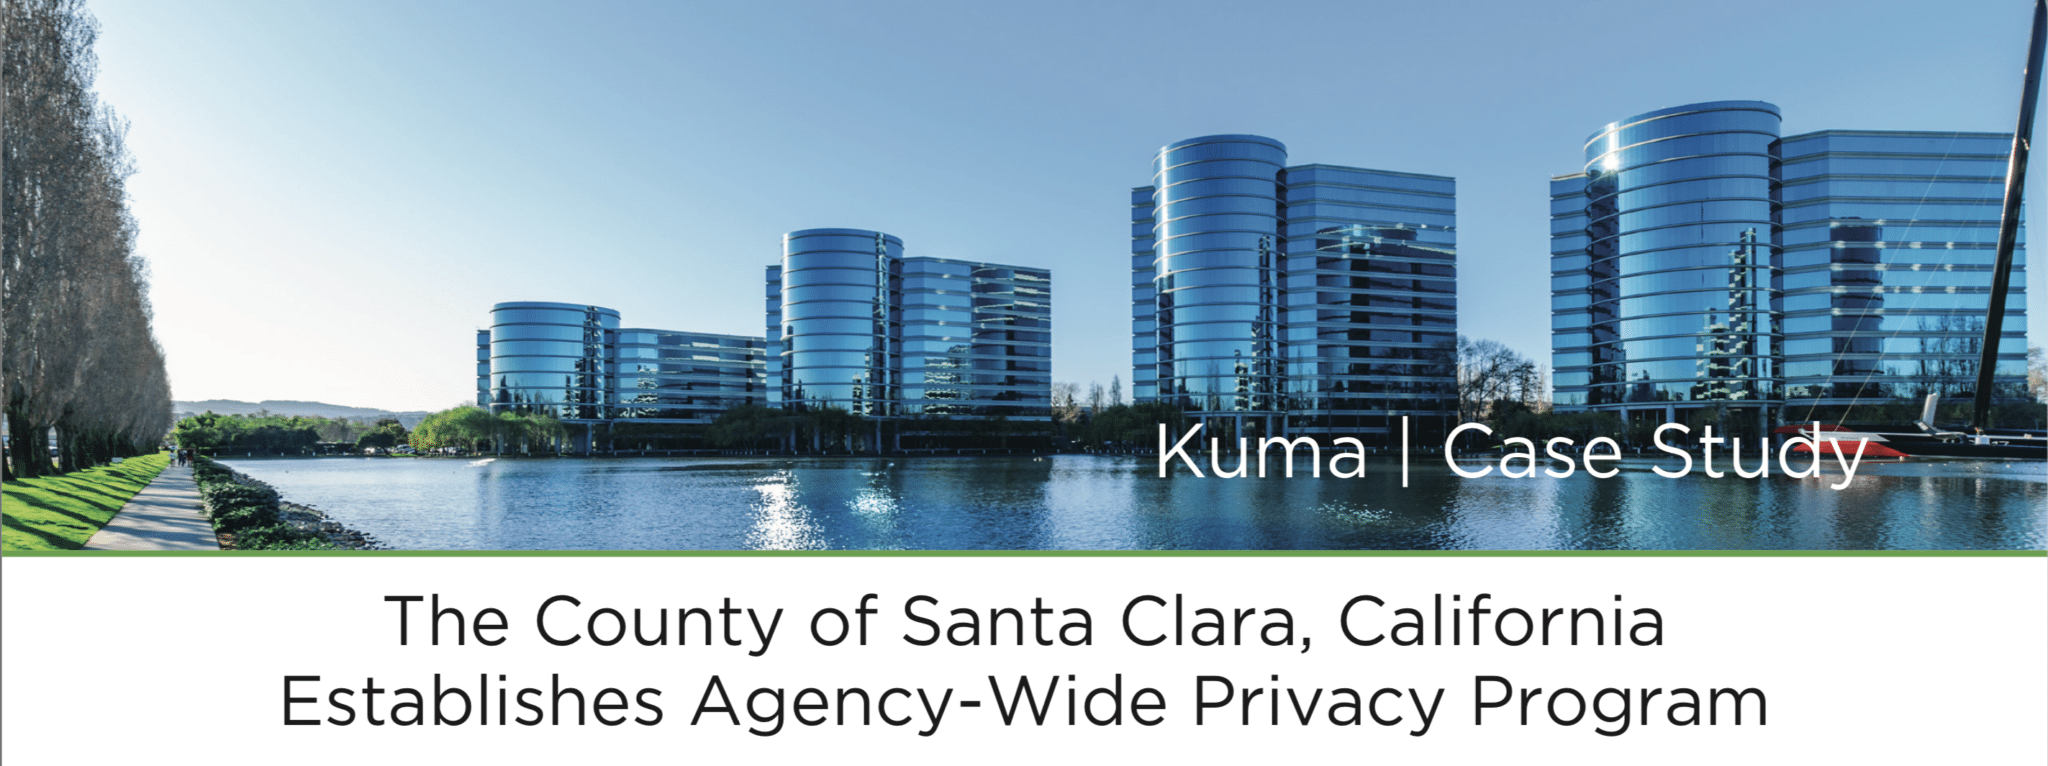 The County of Santa Clara, California Establishes Agency-Wide Privacy Program